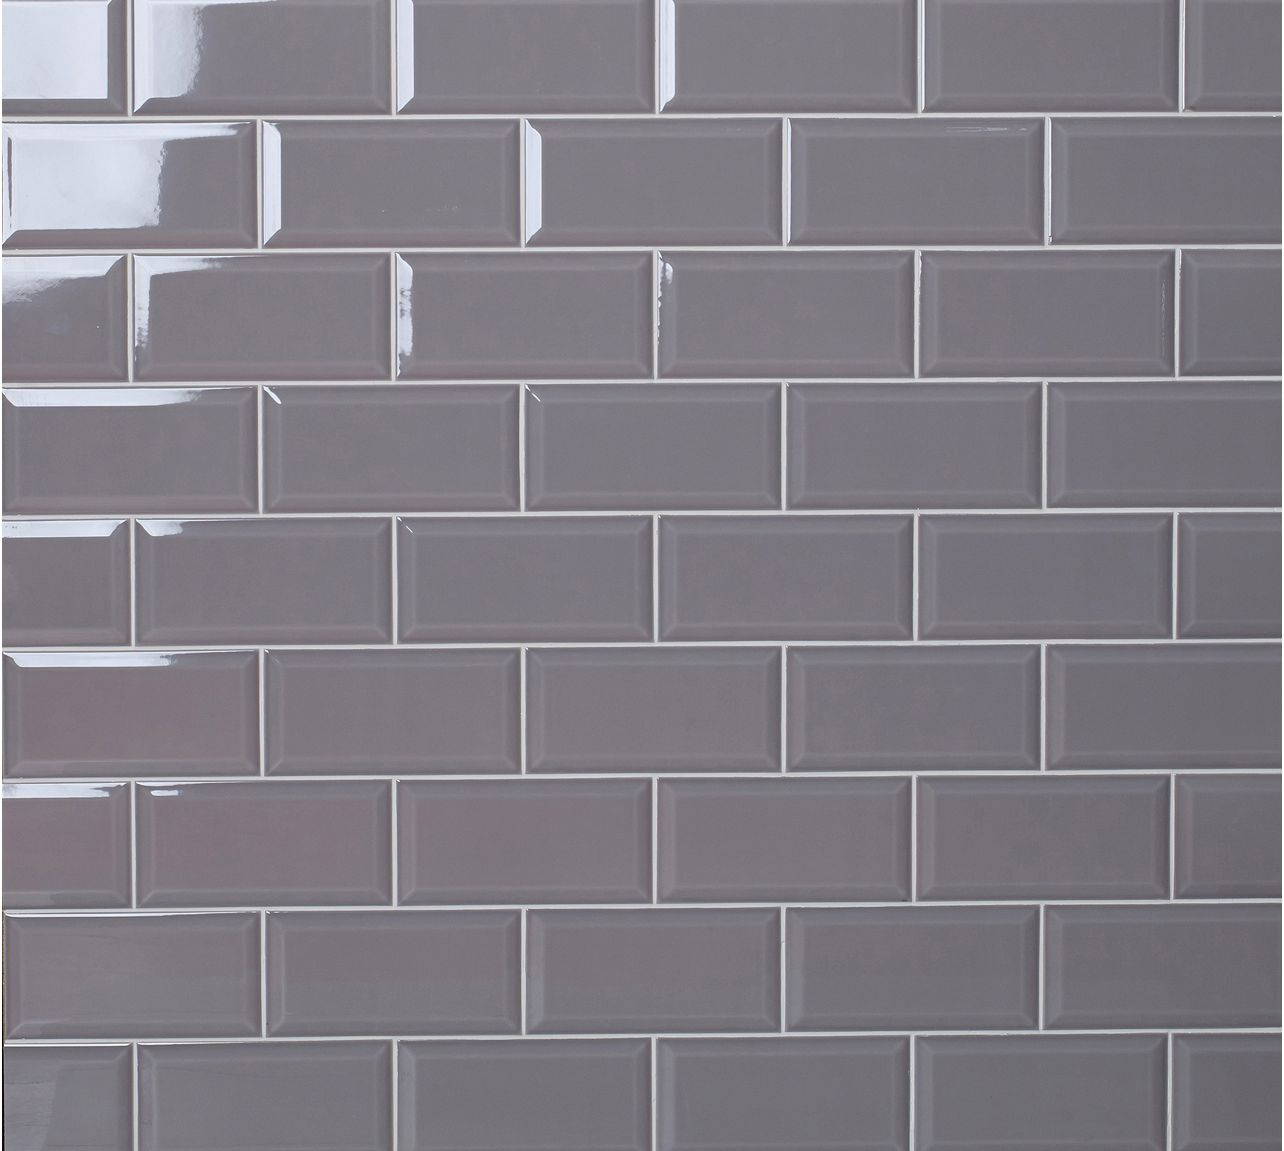 Grey Slate Kitchen Wall Tiles: Metro Ambience Slate Grey Brick Shaped Wall Tile With A